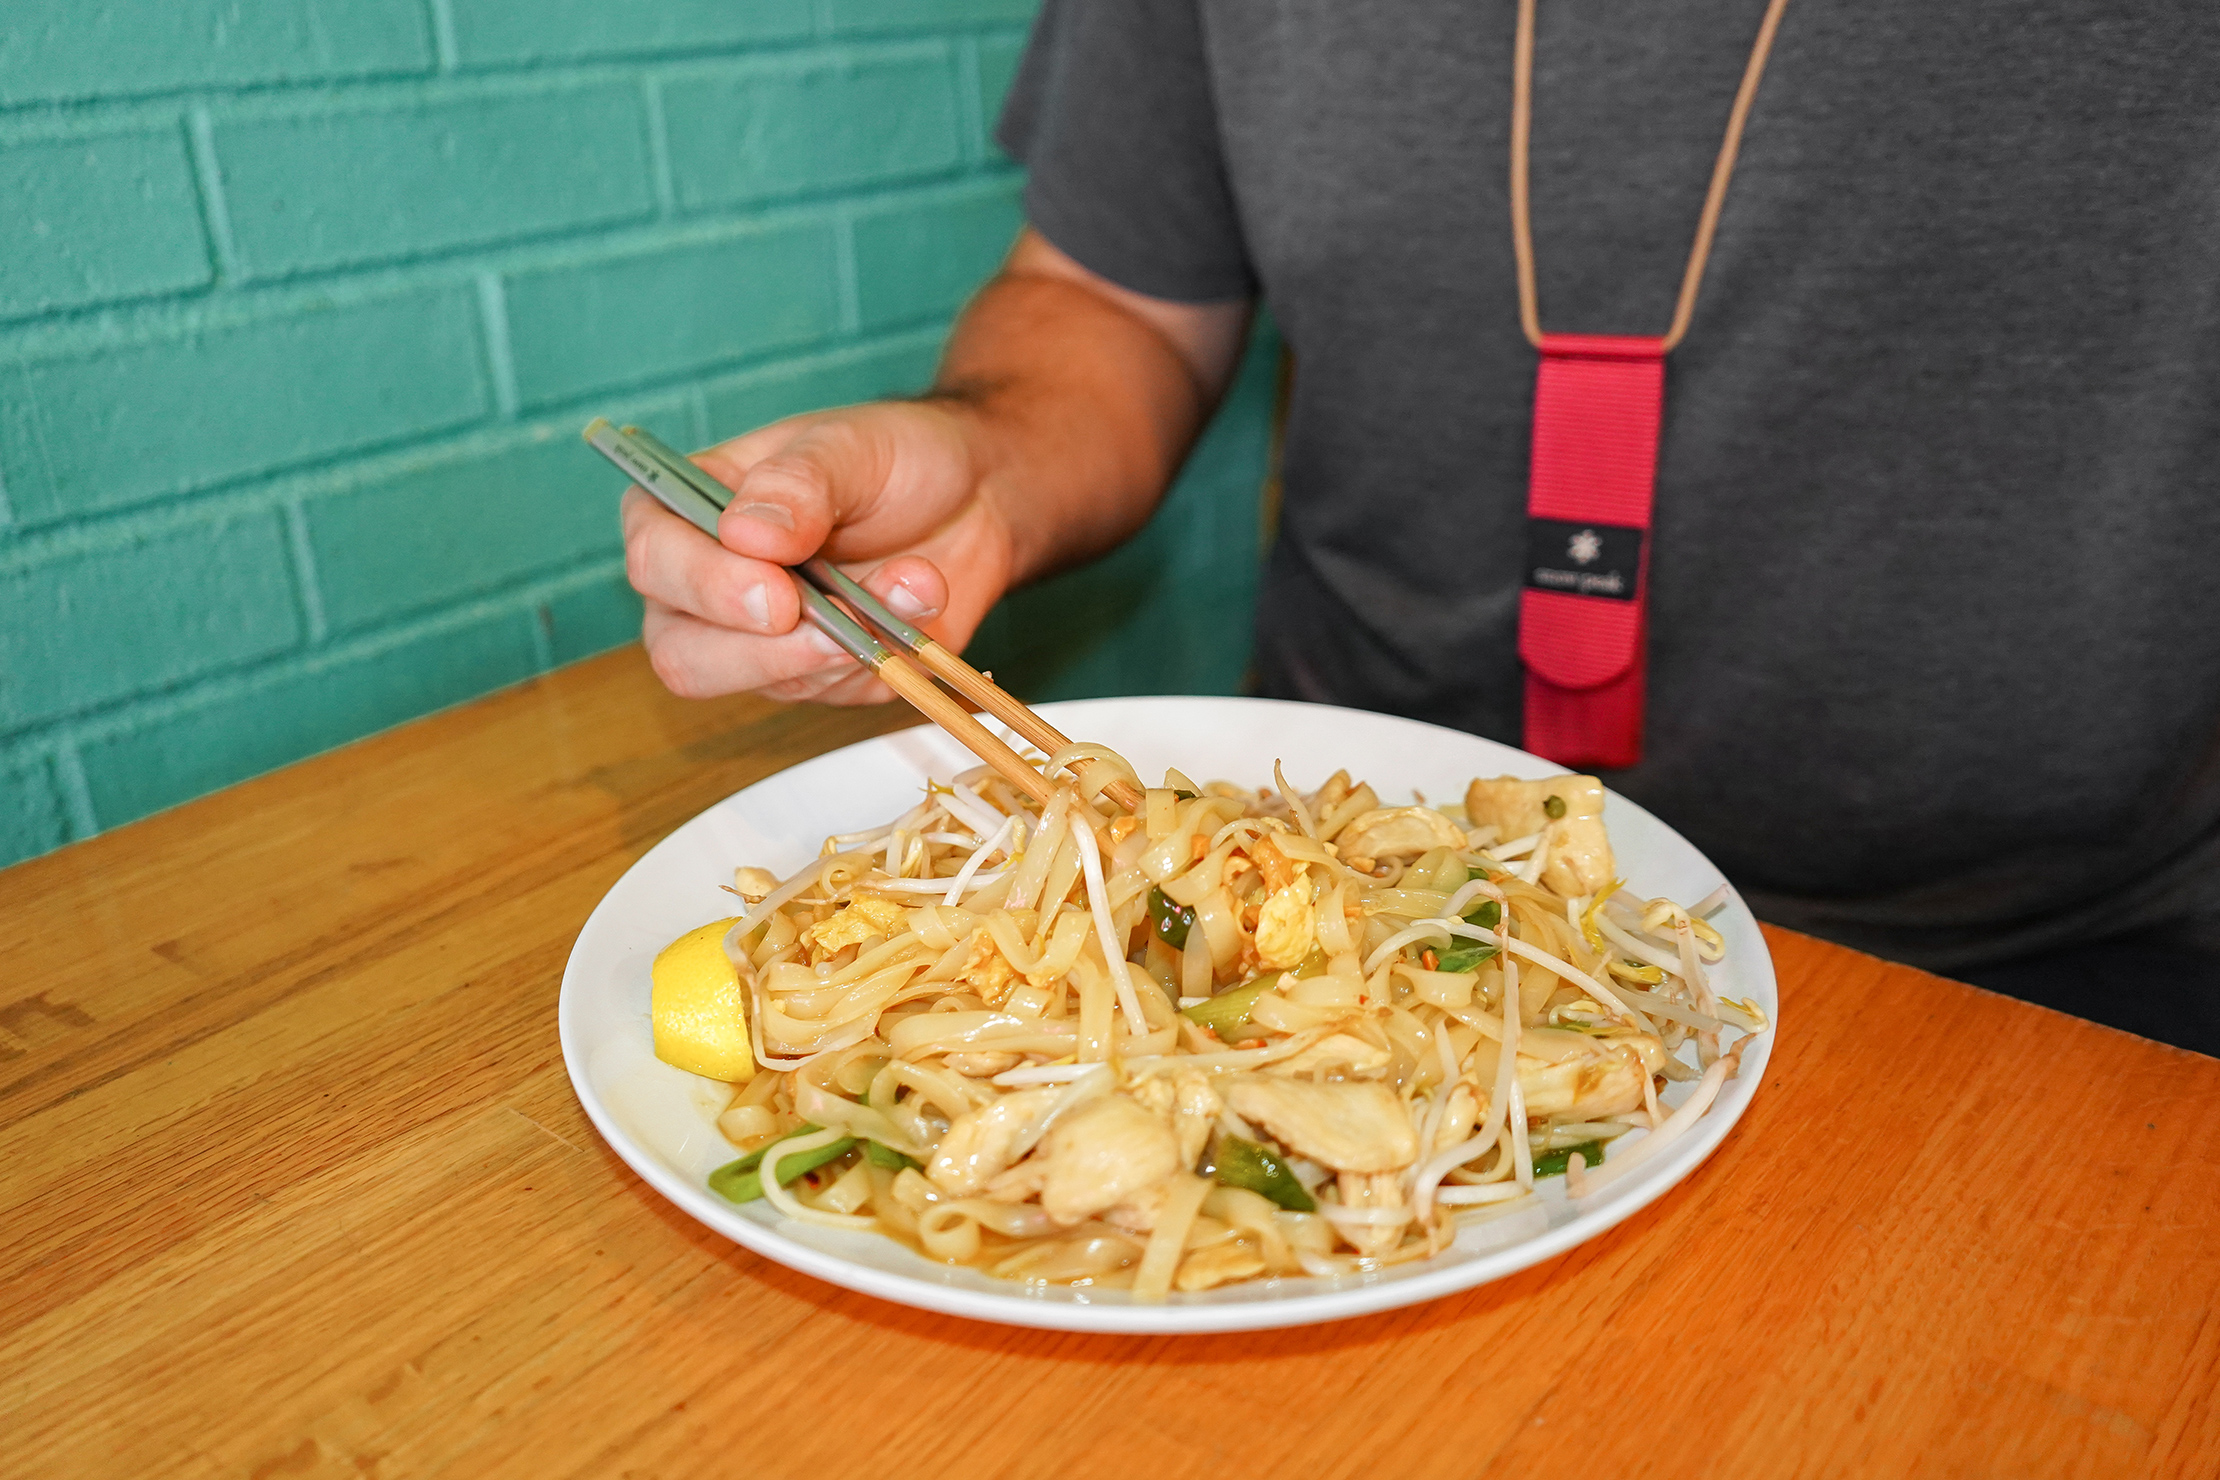 Staycation Ideas | Try a new local restaurant